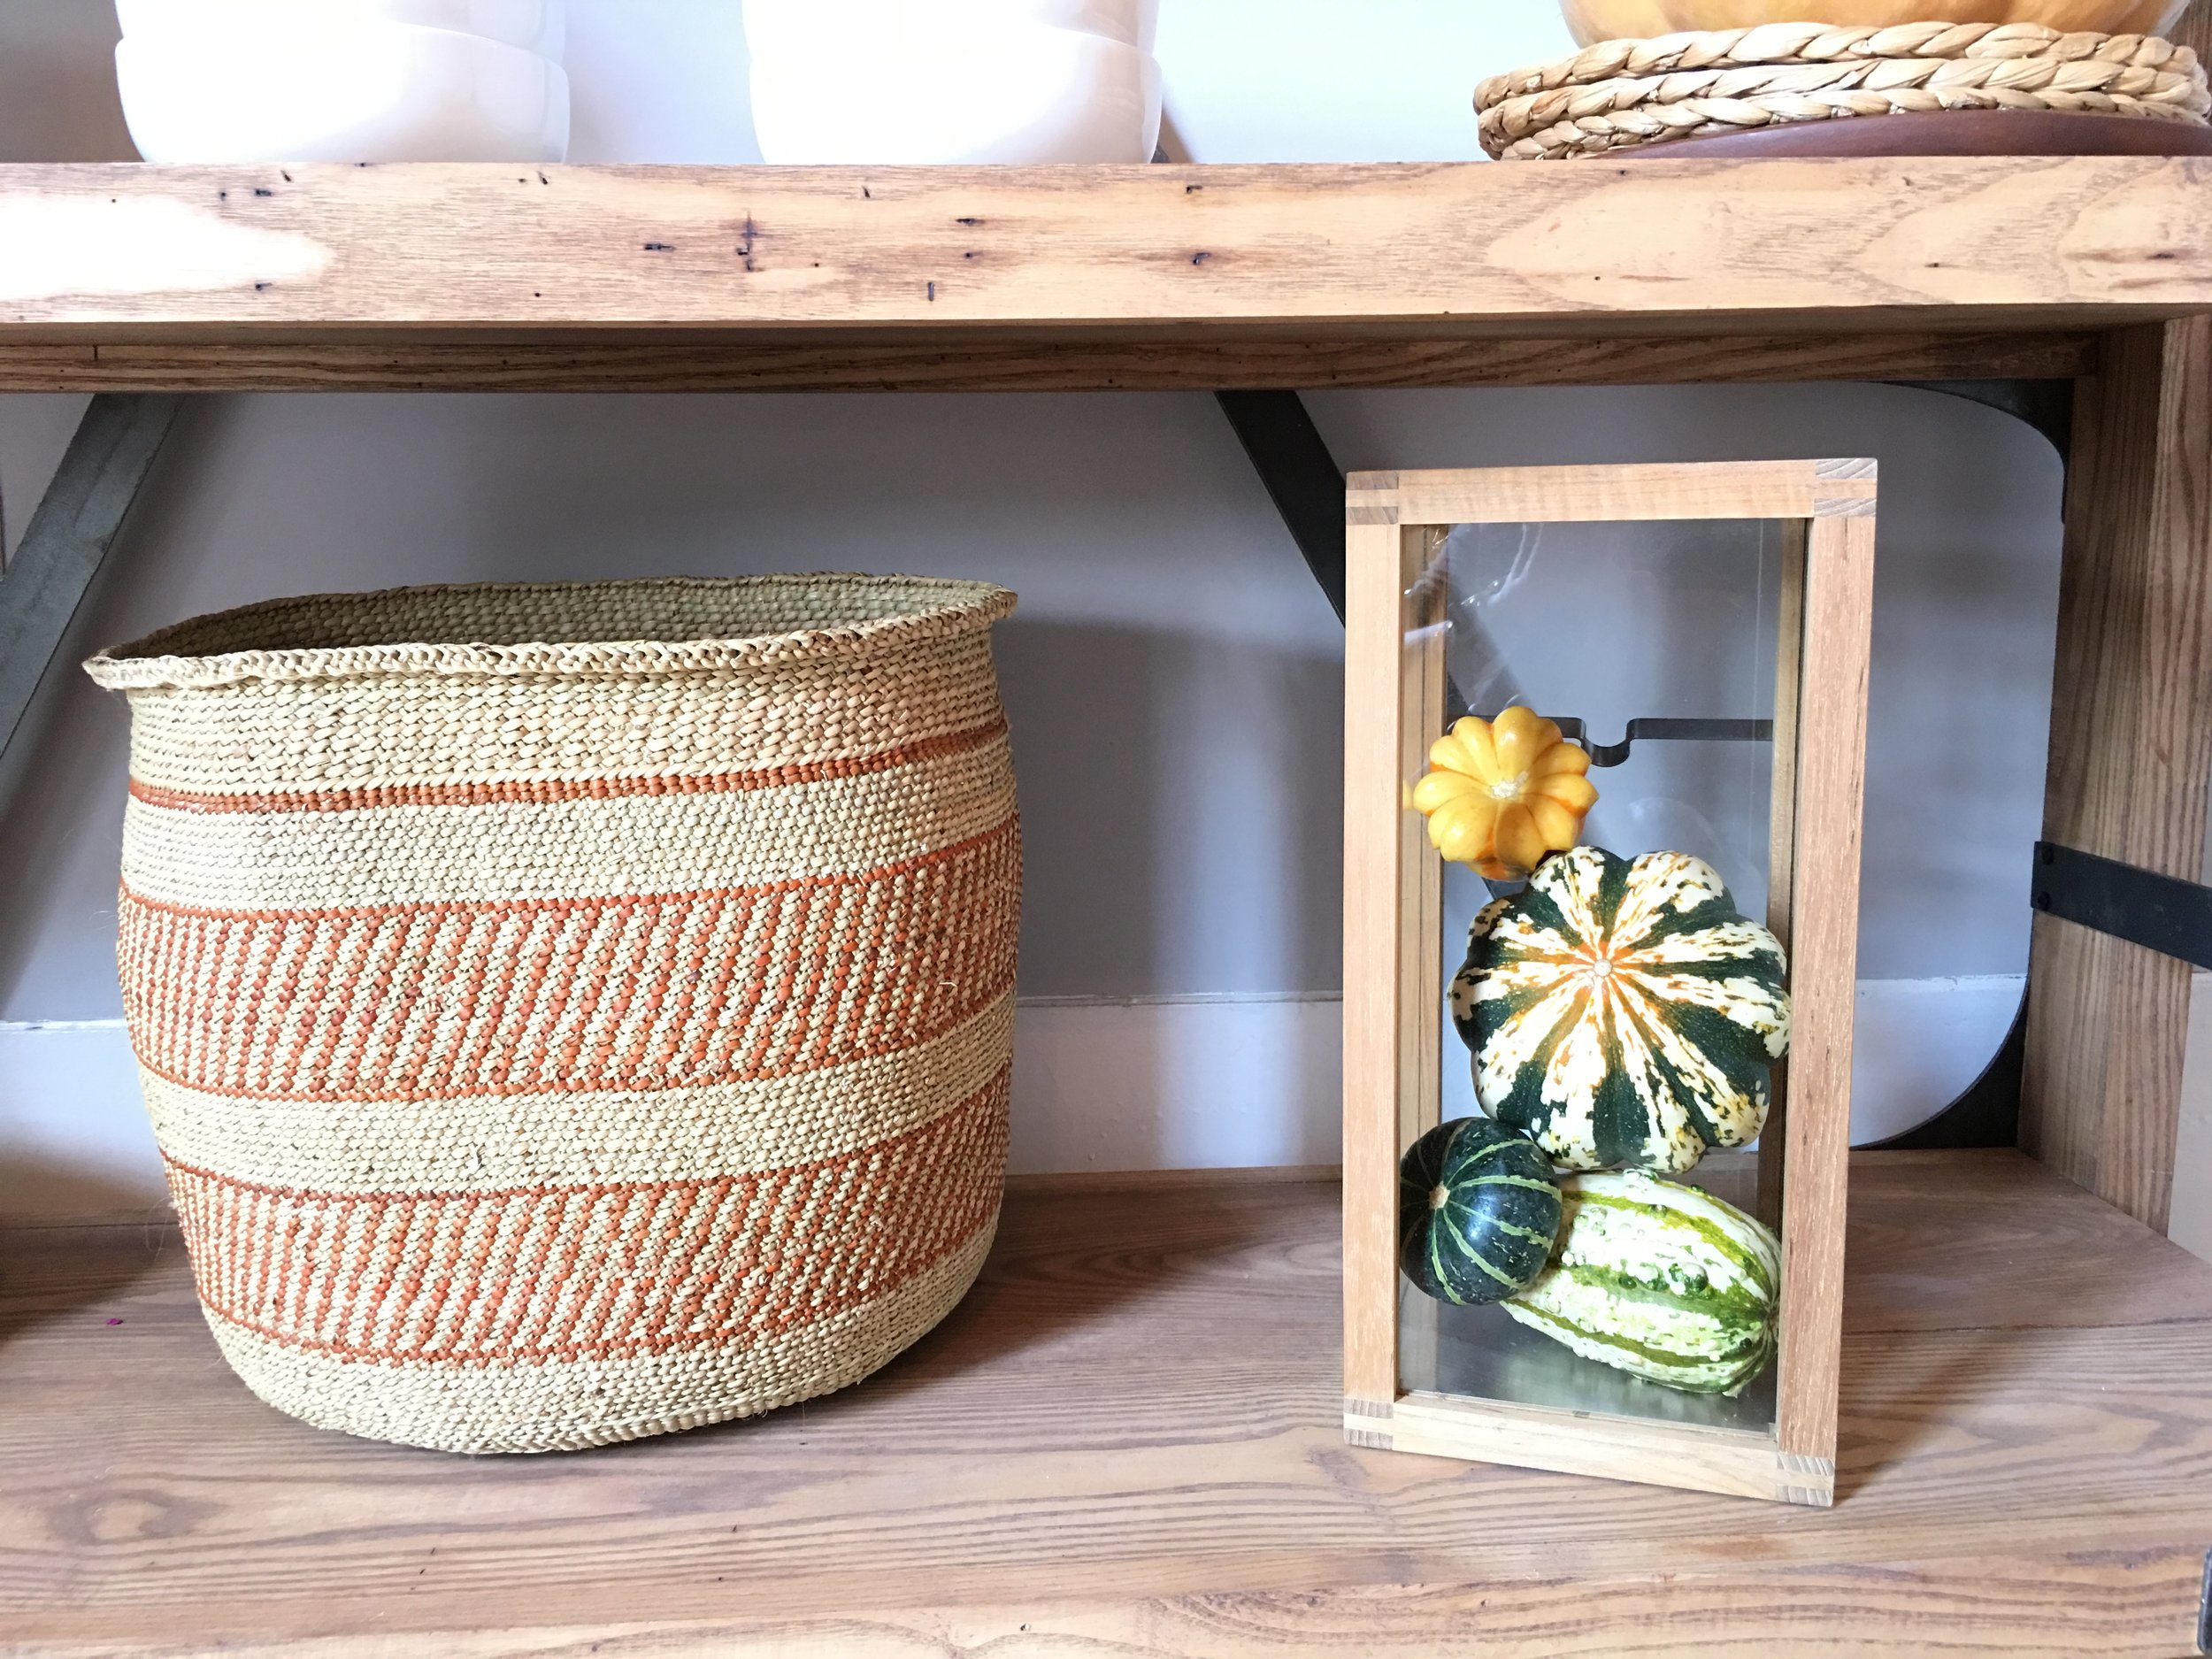 This is one of my favorite baskets and a catch all for anything extra I can put up later! It's from @plumandsparrow.